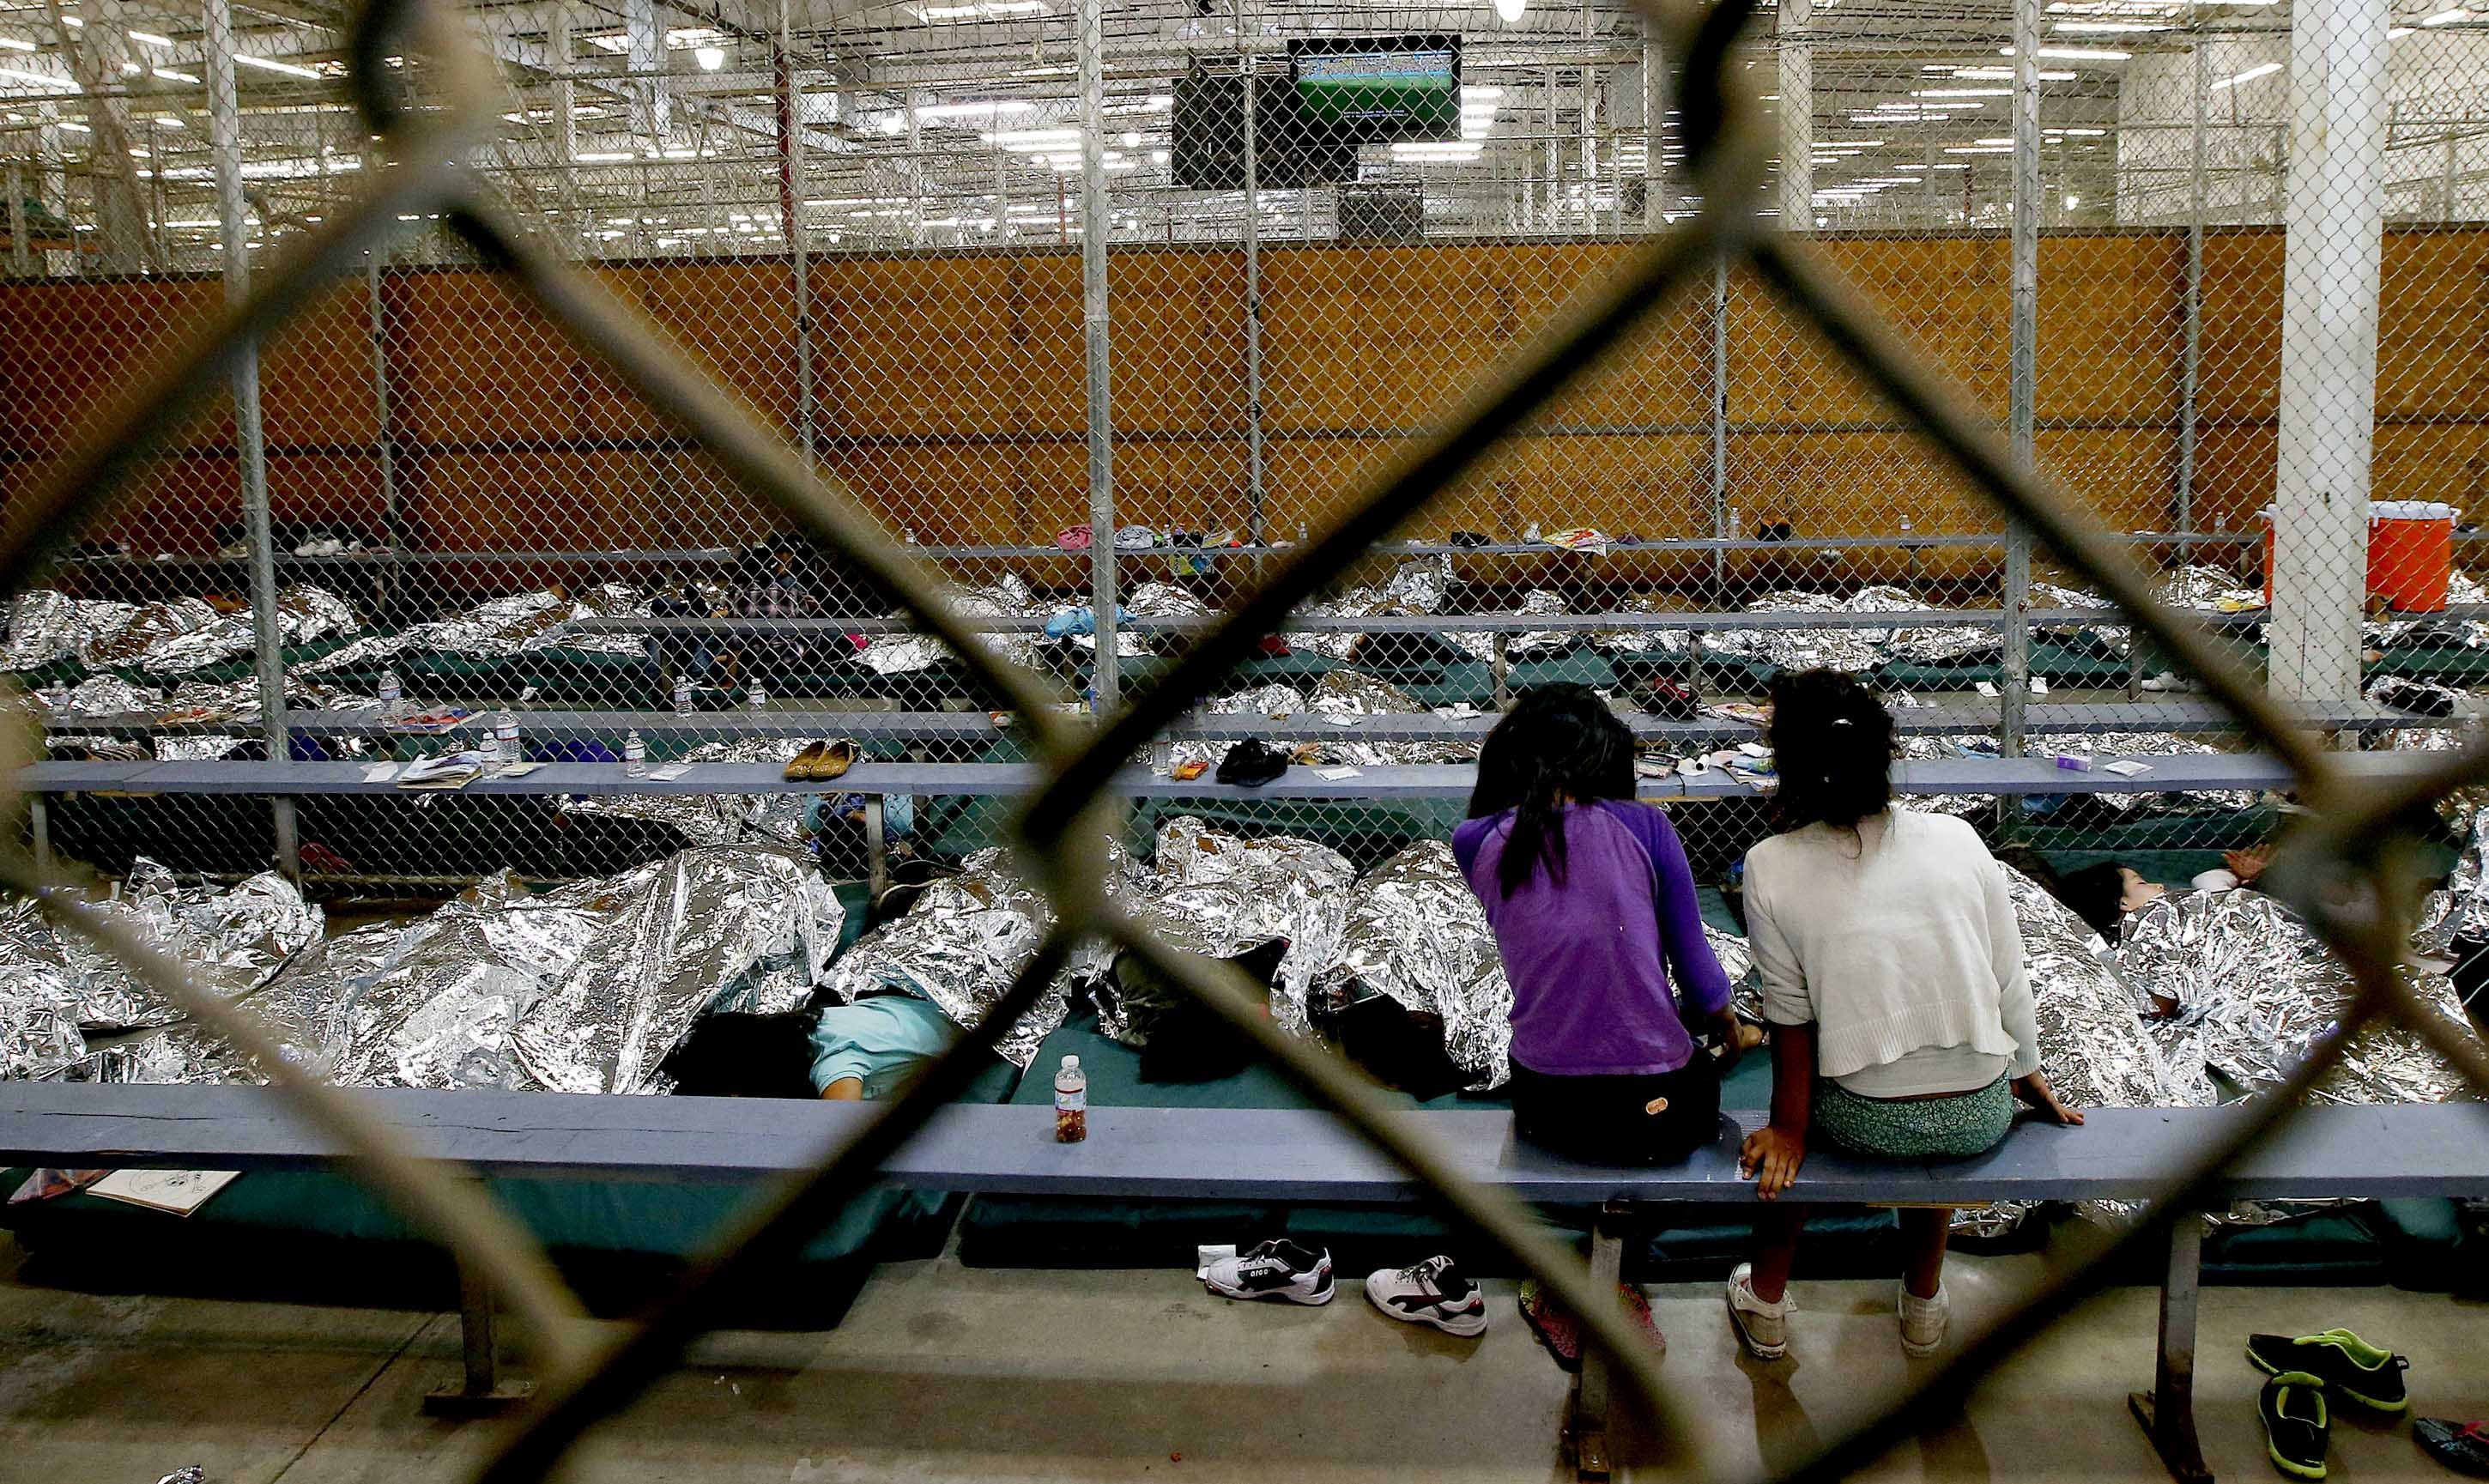 Here Are The Photos Of Obama's Illegal Immigrant Detention Facilities The Media Won't Show You  6/20/18